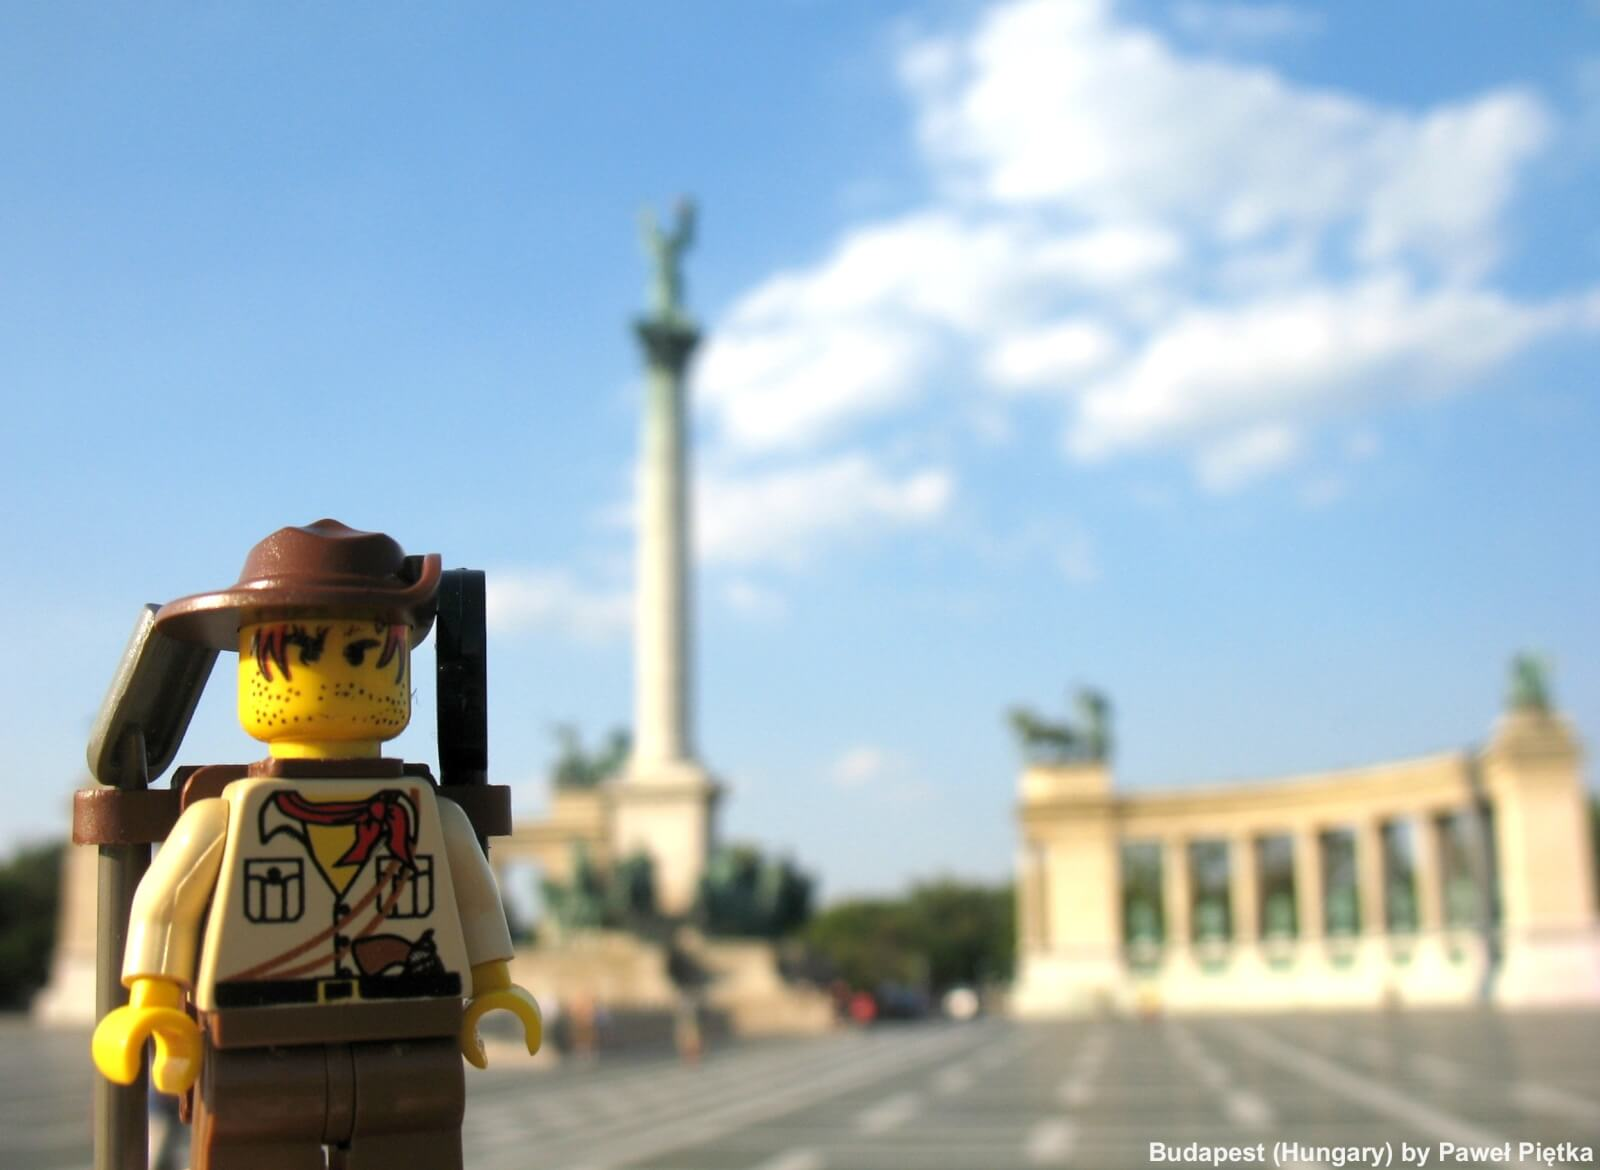 Budapest (Hungary) - Heroes' Square